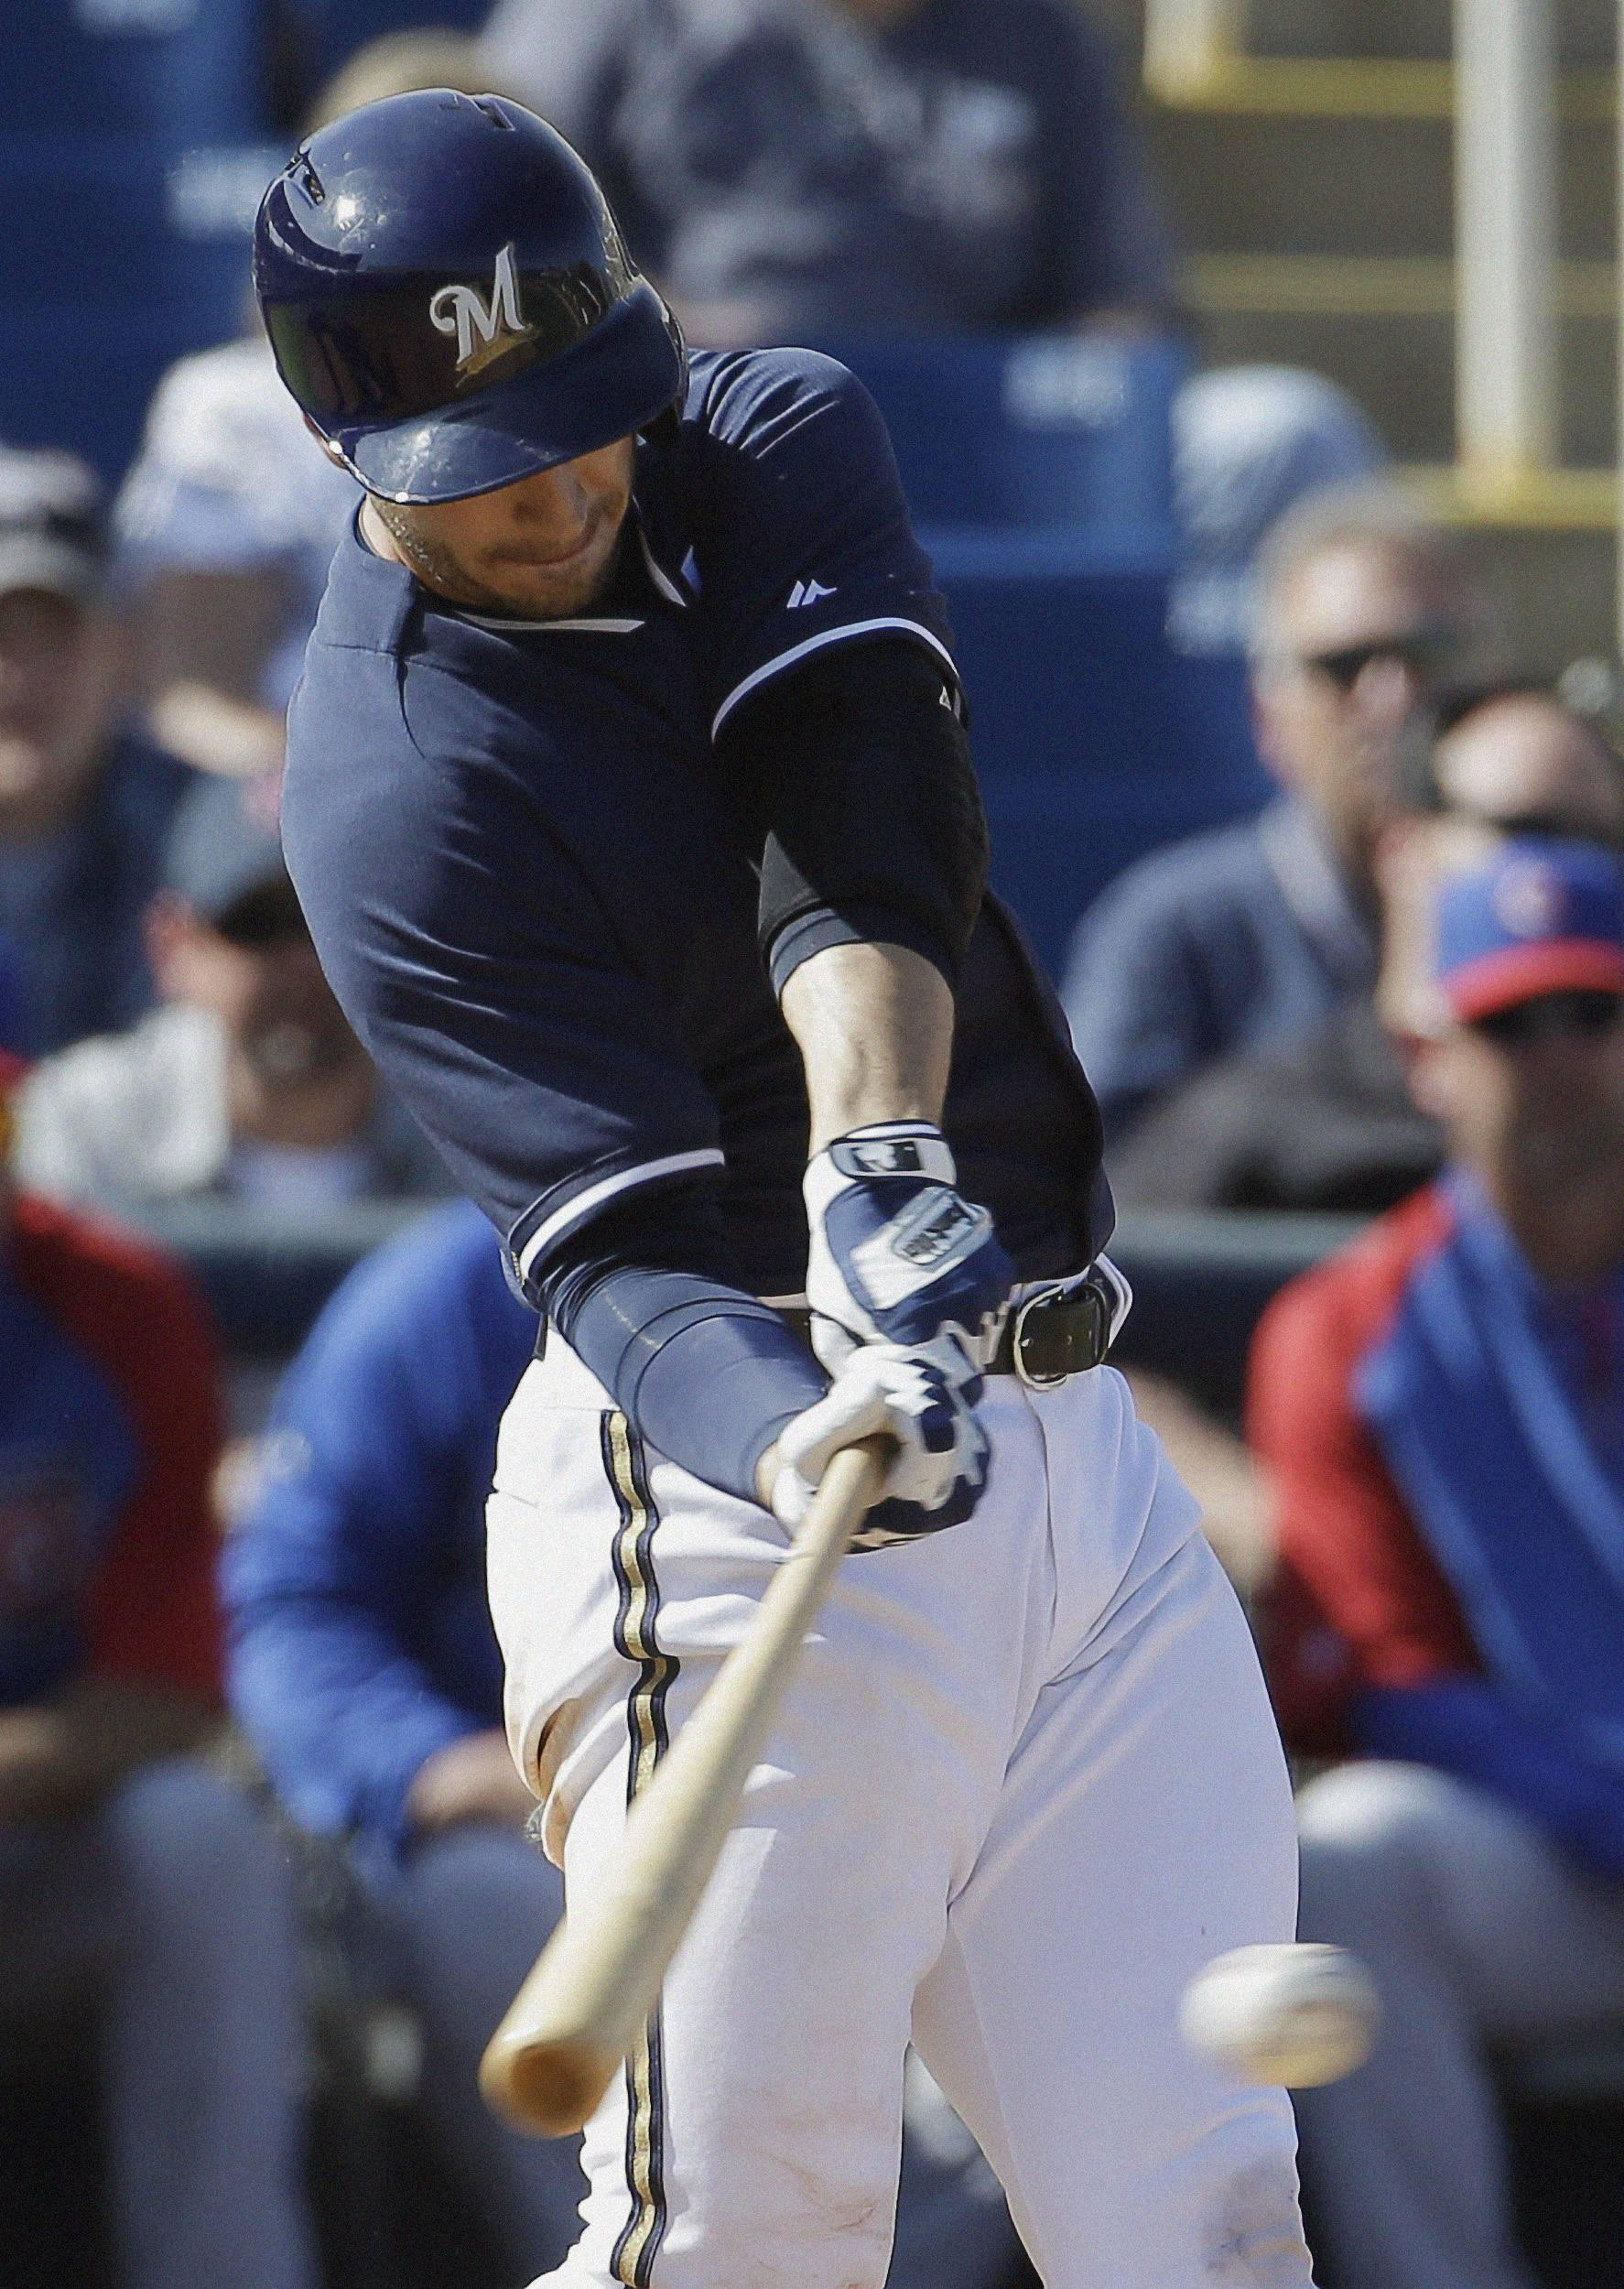 The Brewers' Ryan Braun hits a single during the fifth inning of a spring training game Monday against the Cubs in Phoenix.